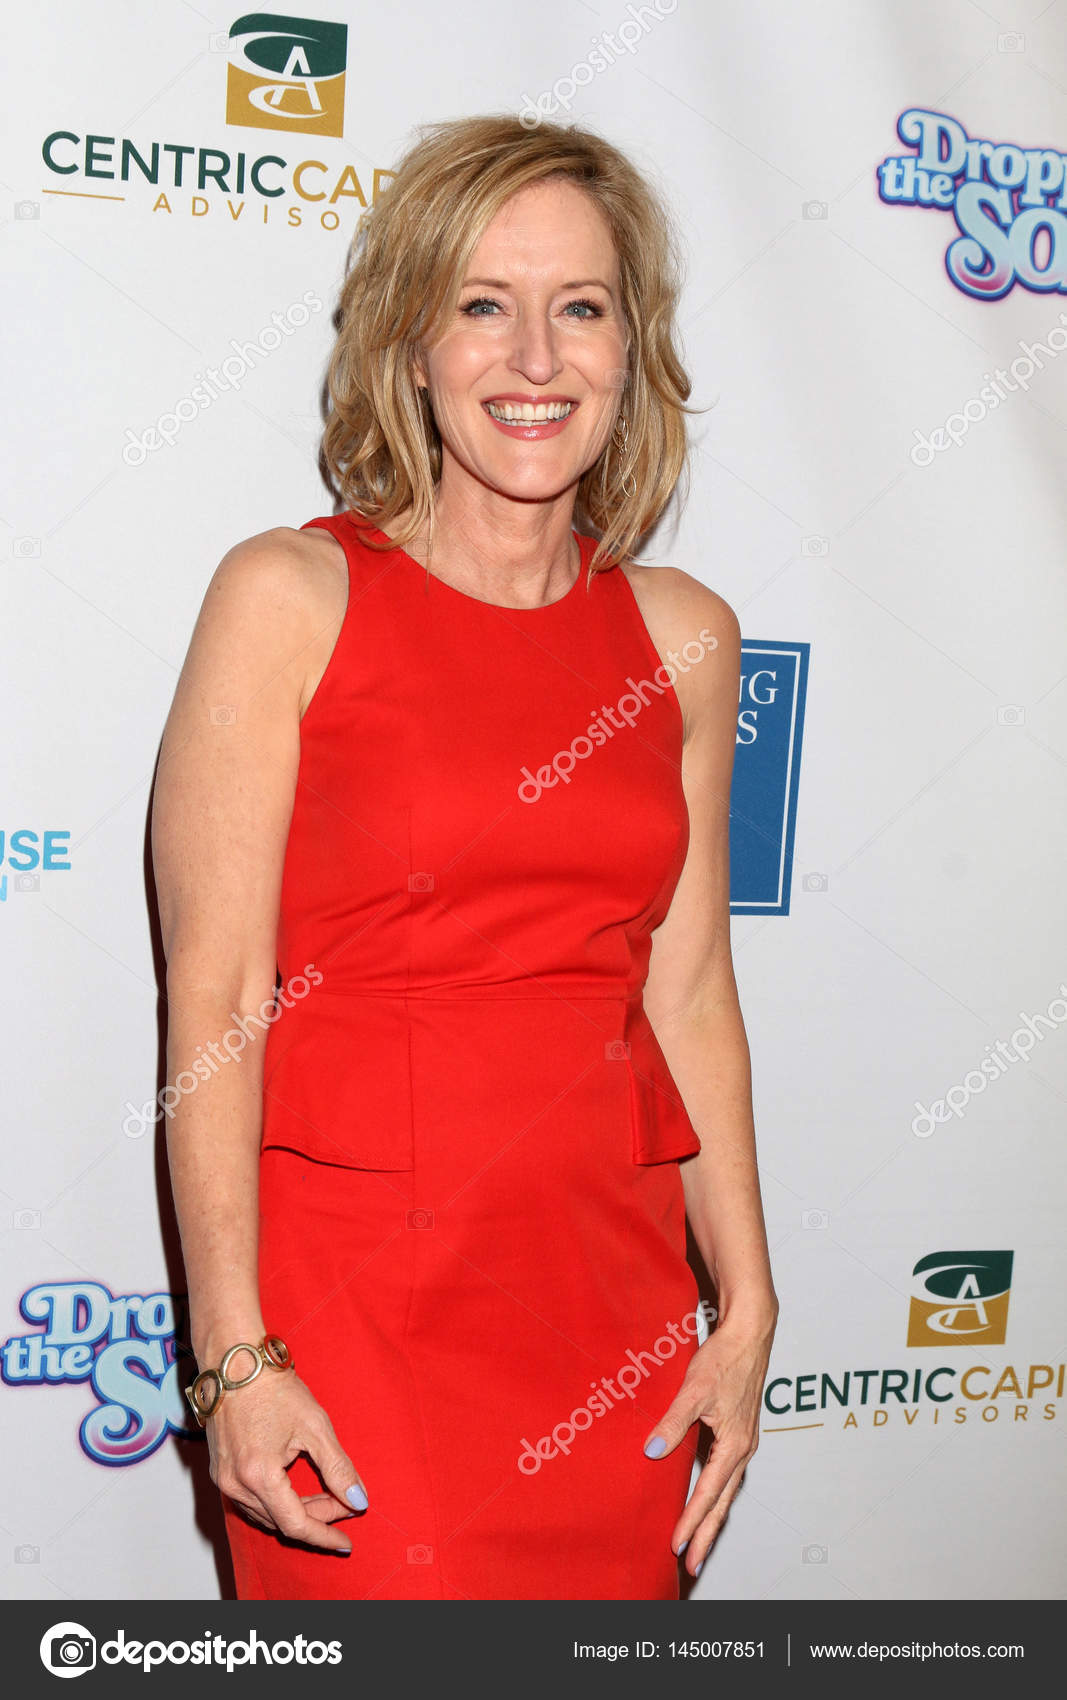 Margie Reiger picture